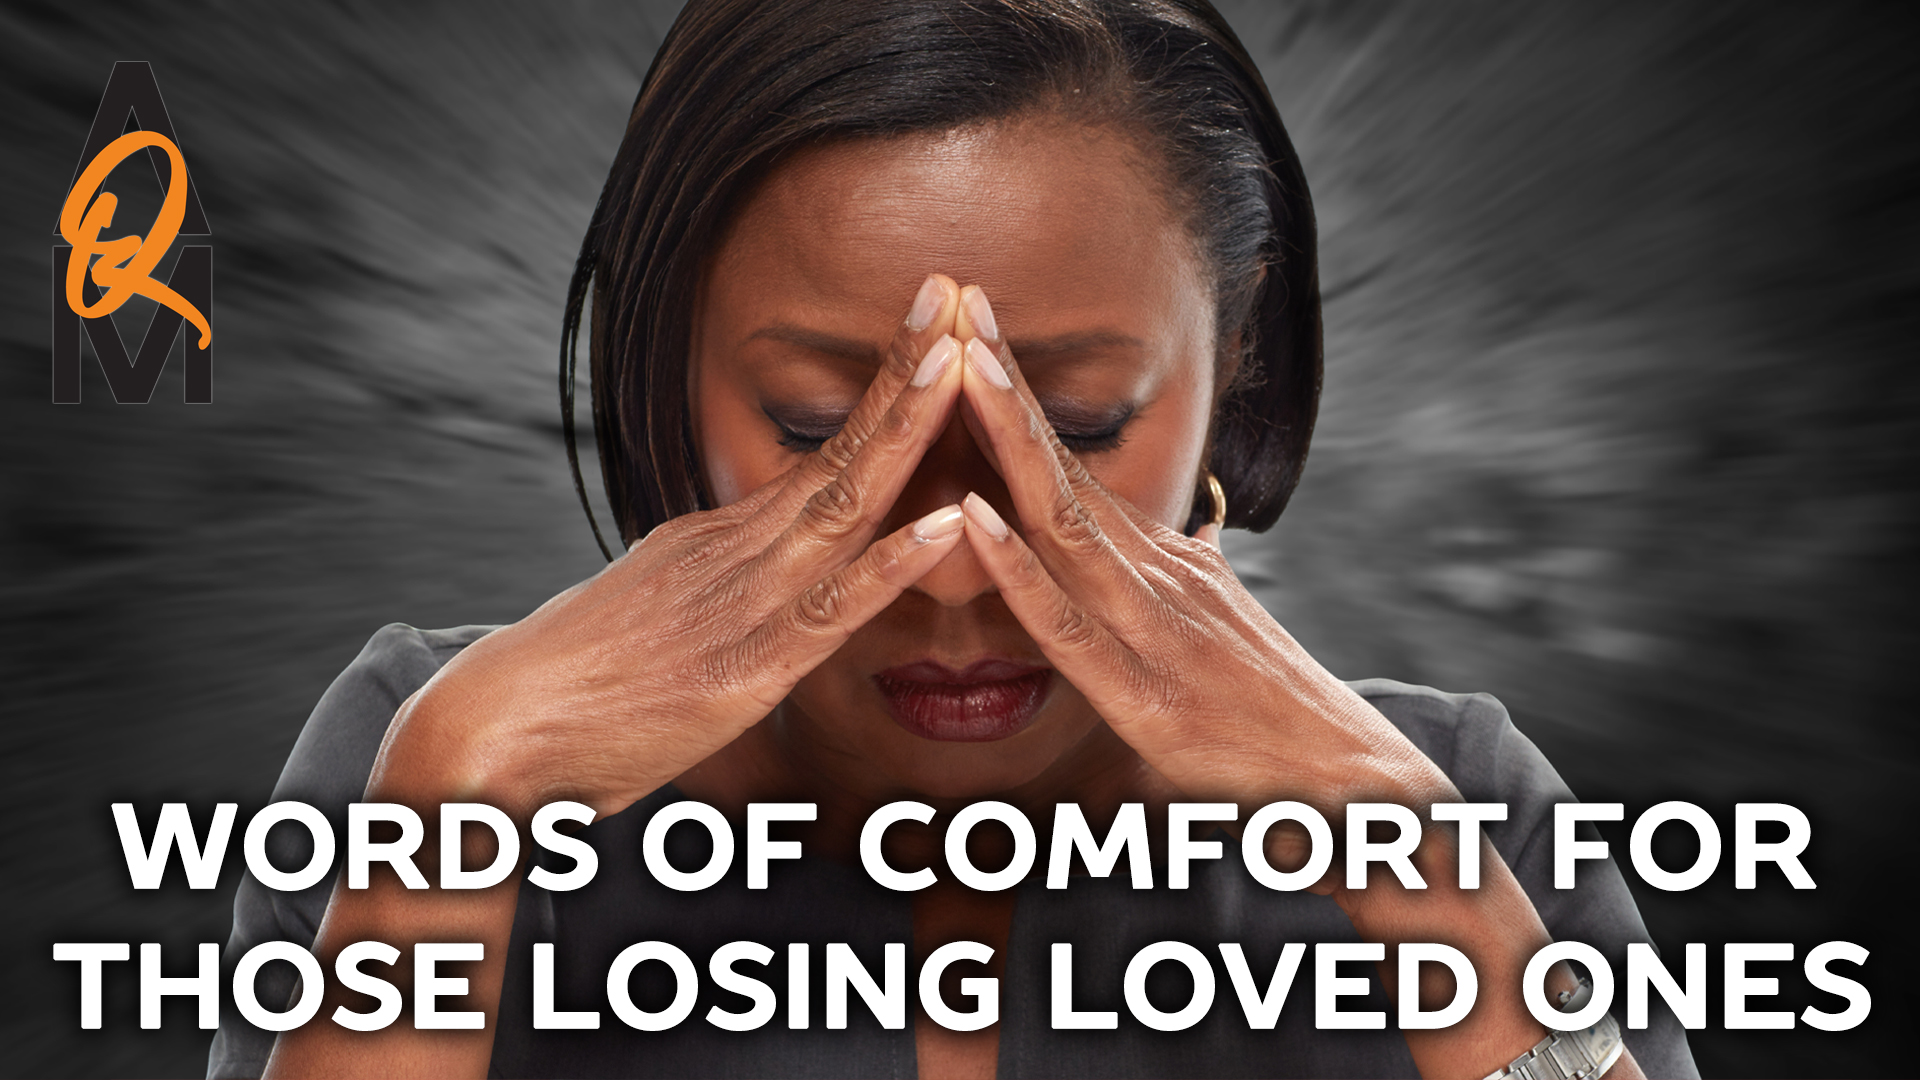 Words of Comfort For Those Losing Loved Ones